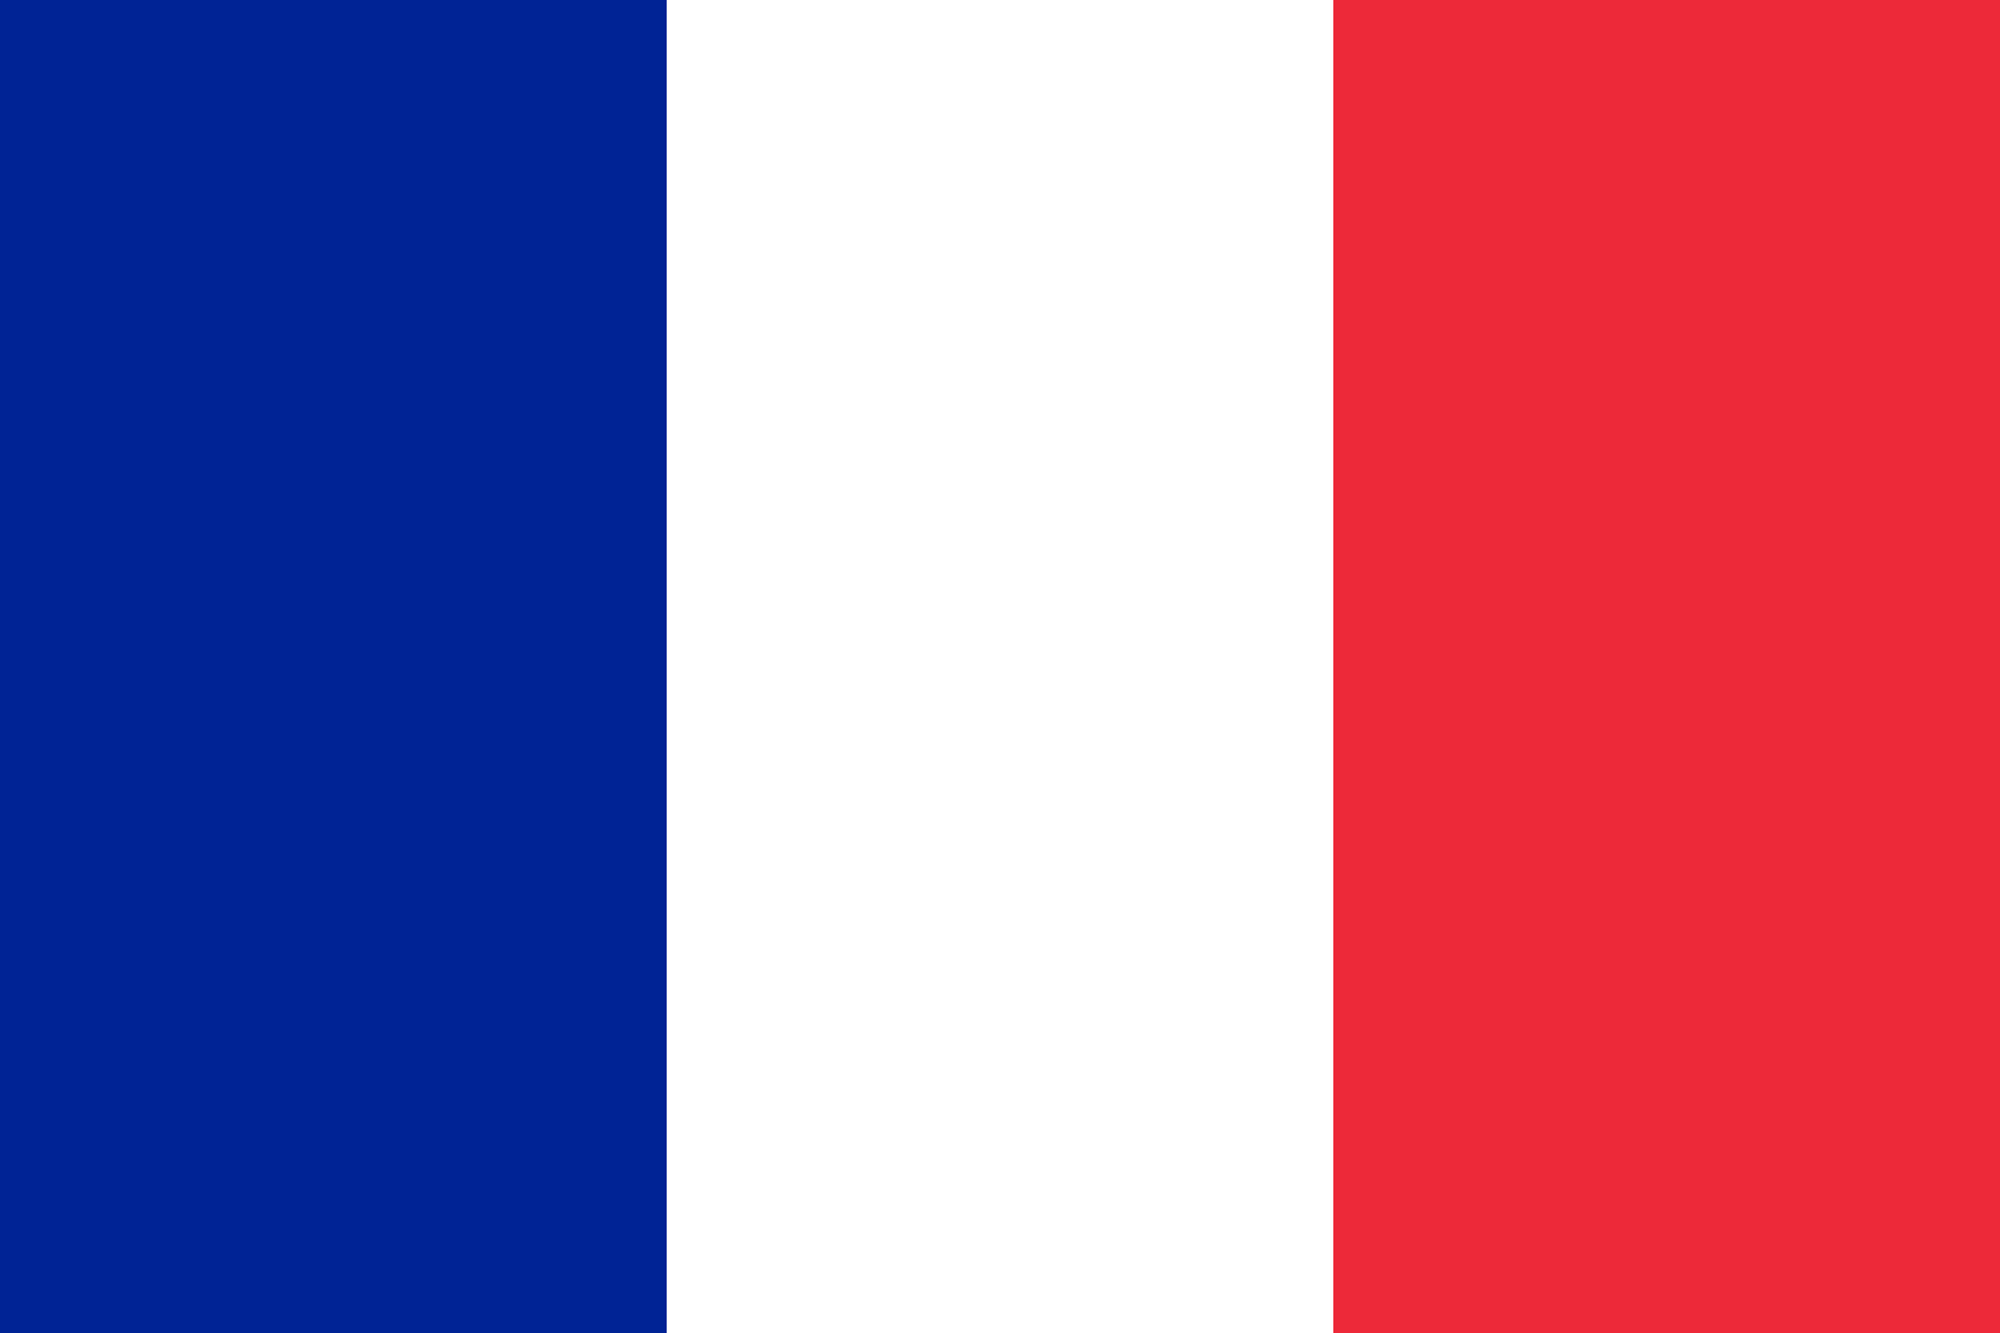 france-flag-large.png